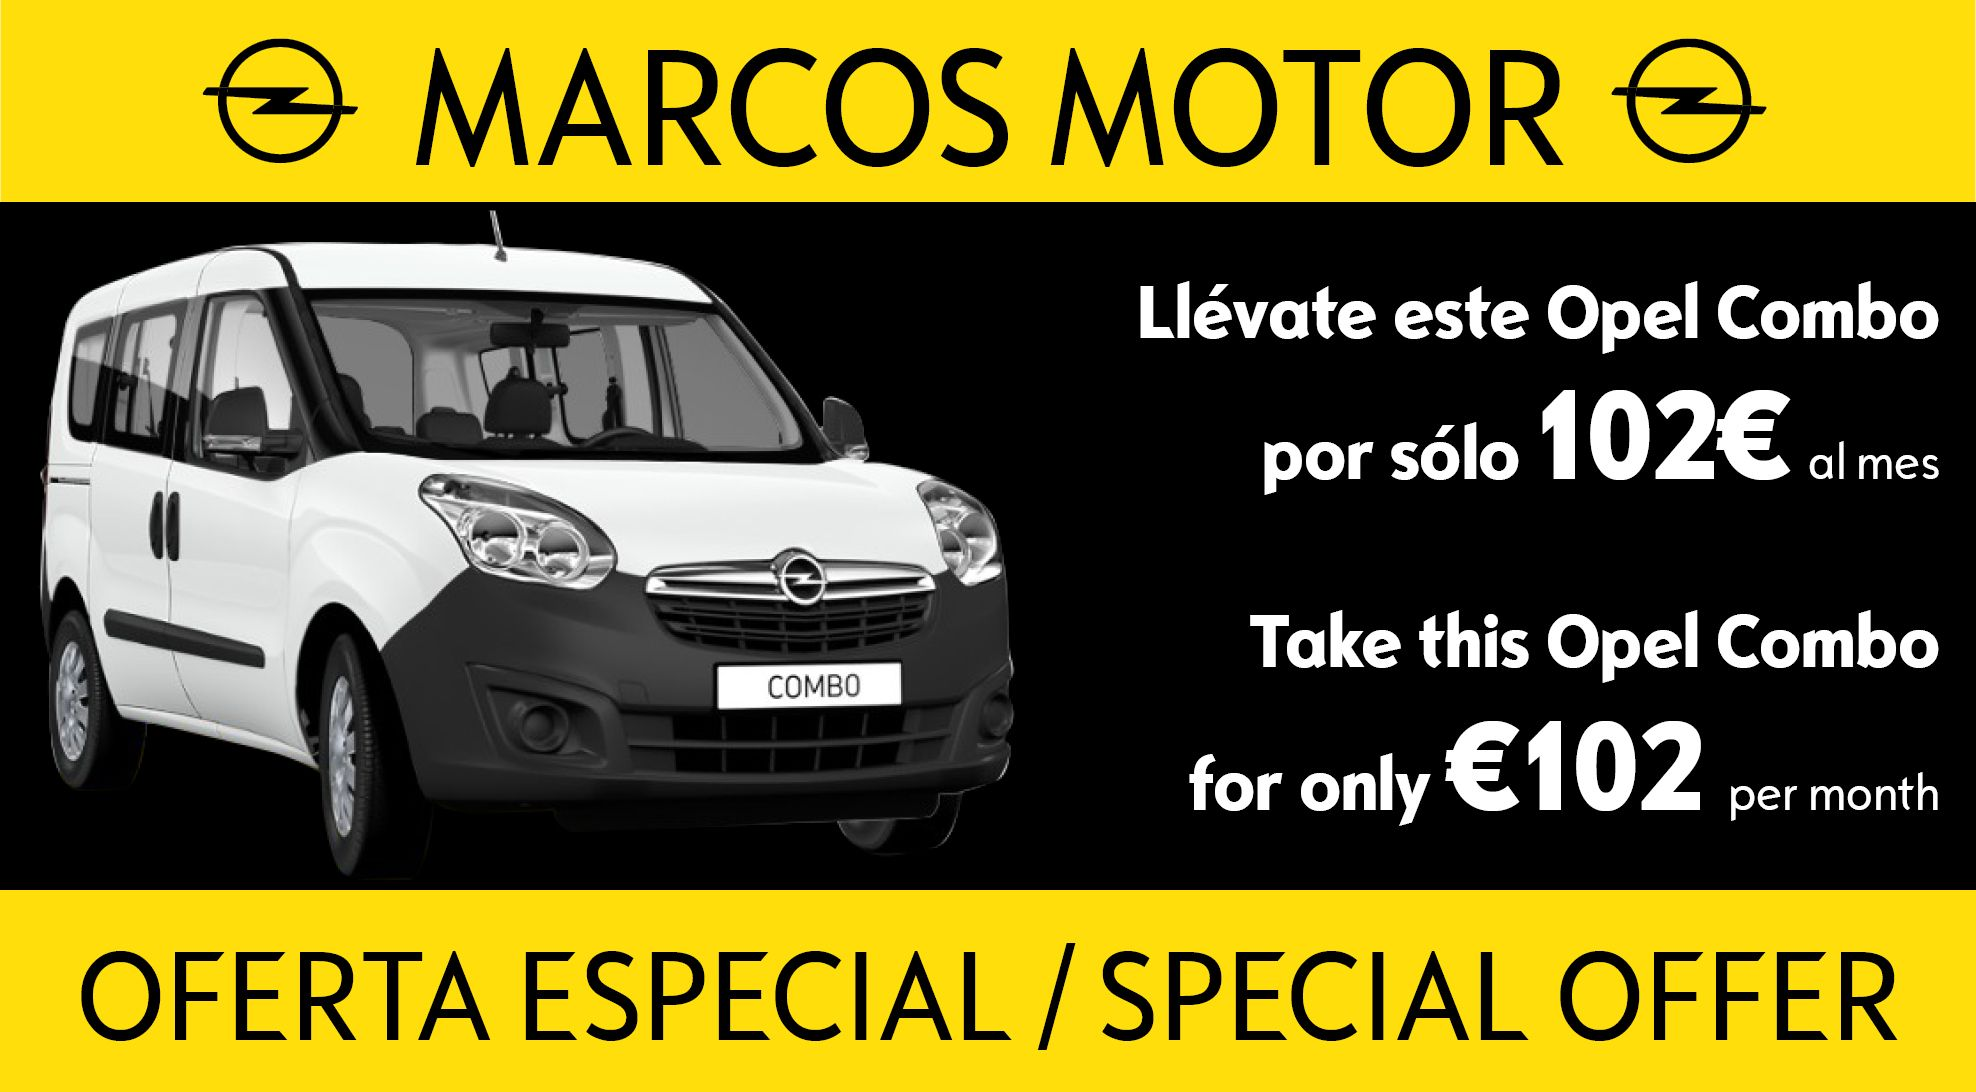 Opel Combo Offer €102 per month